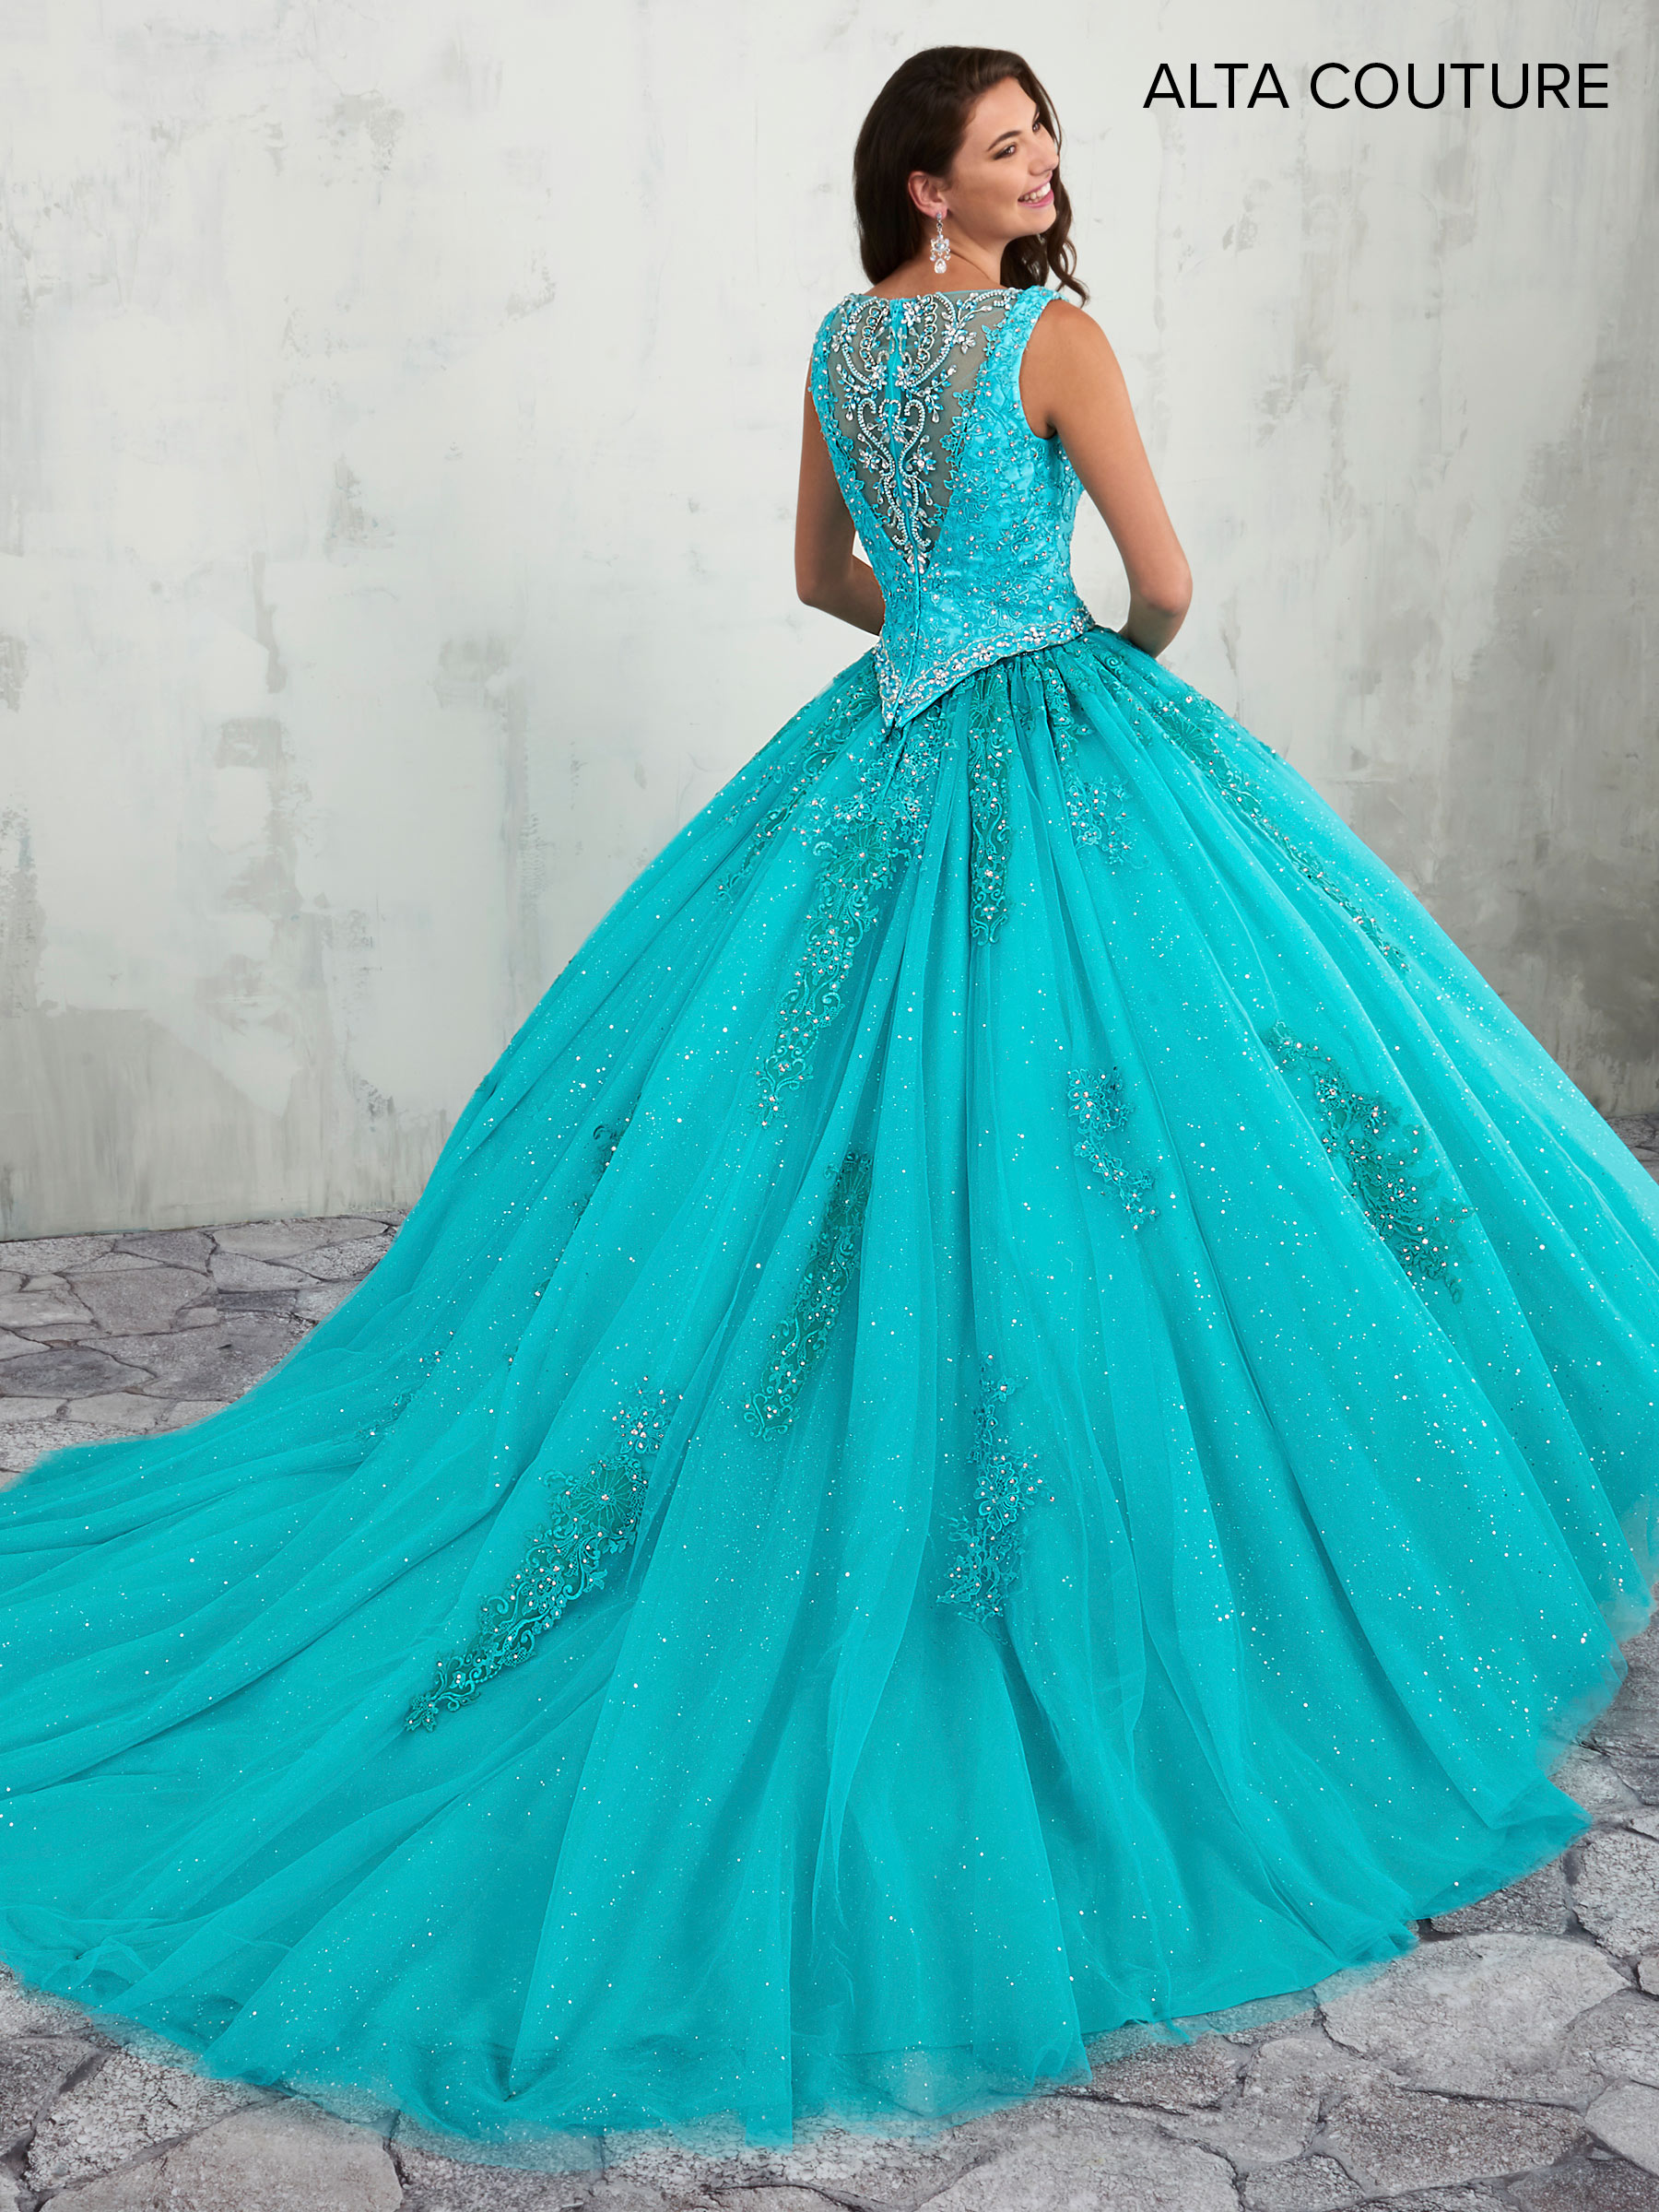 Quinceanera Couture Dresses | Alta Couture | Style - MQ3003